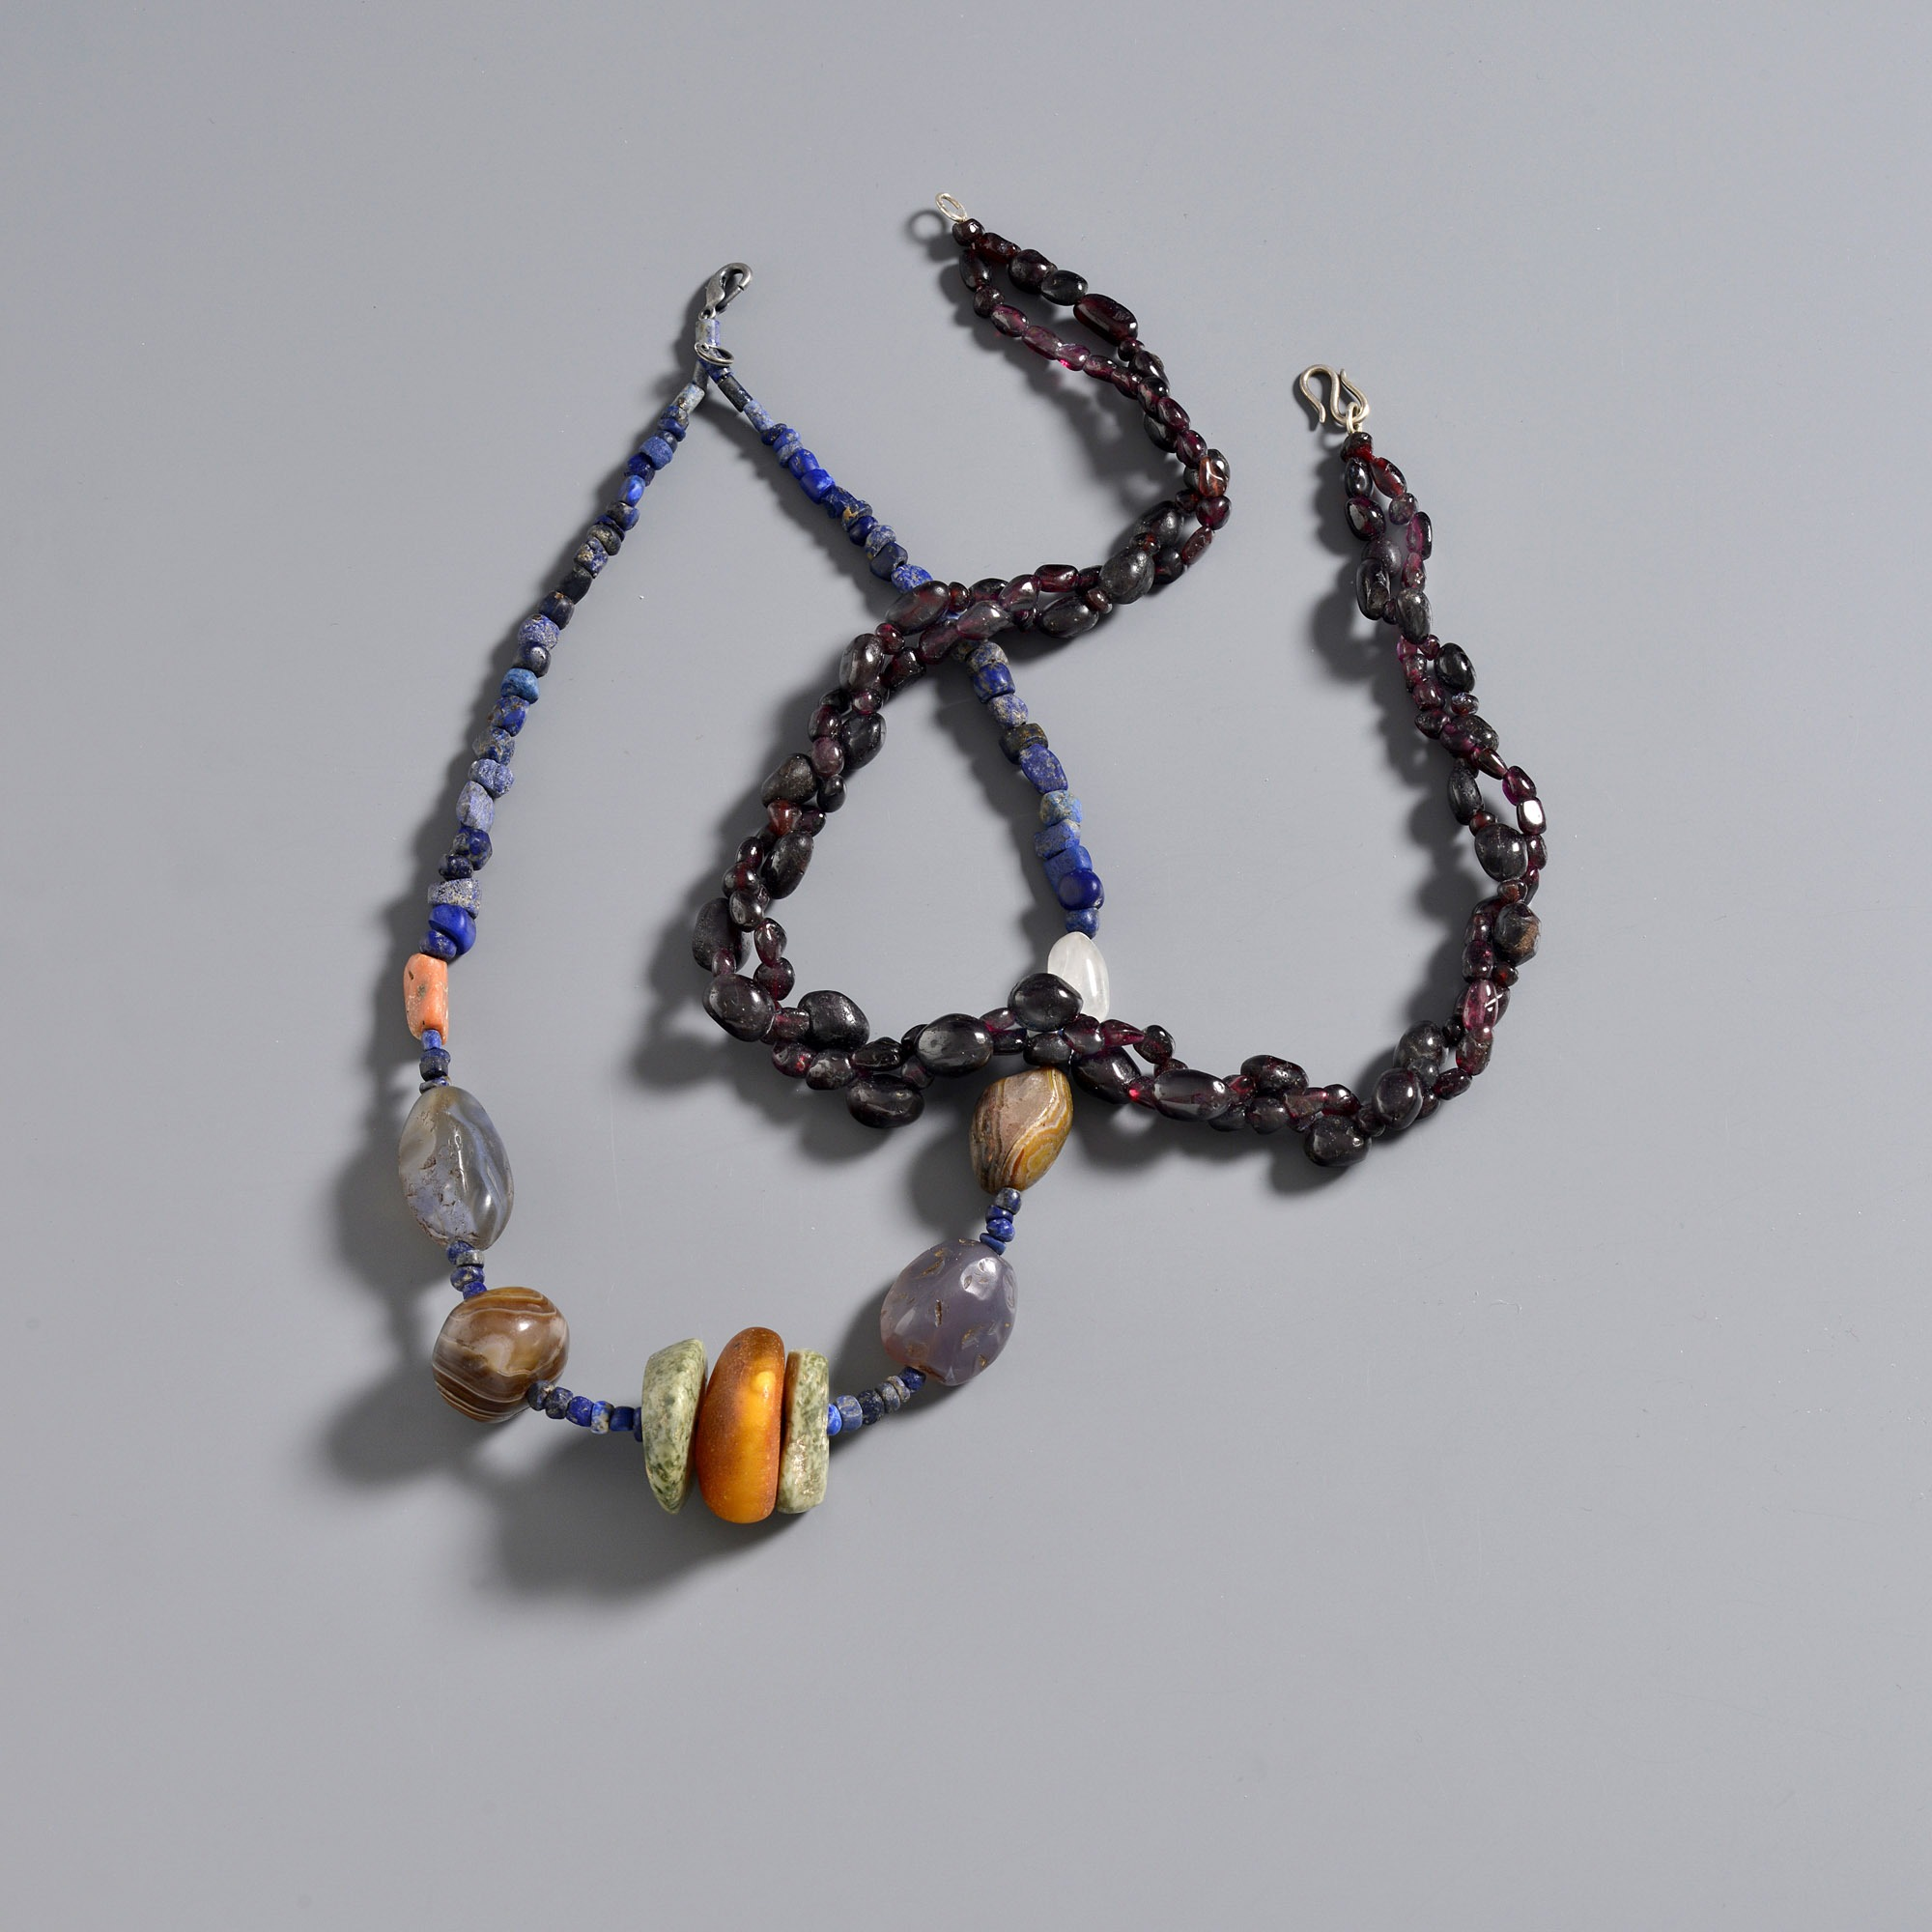 Mixed beads and garnets.